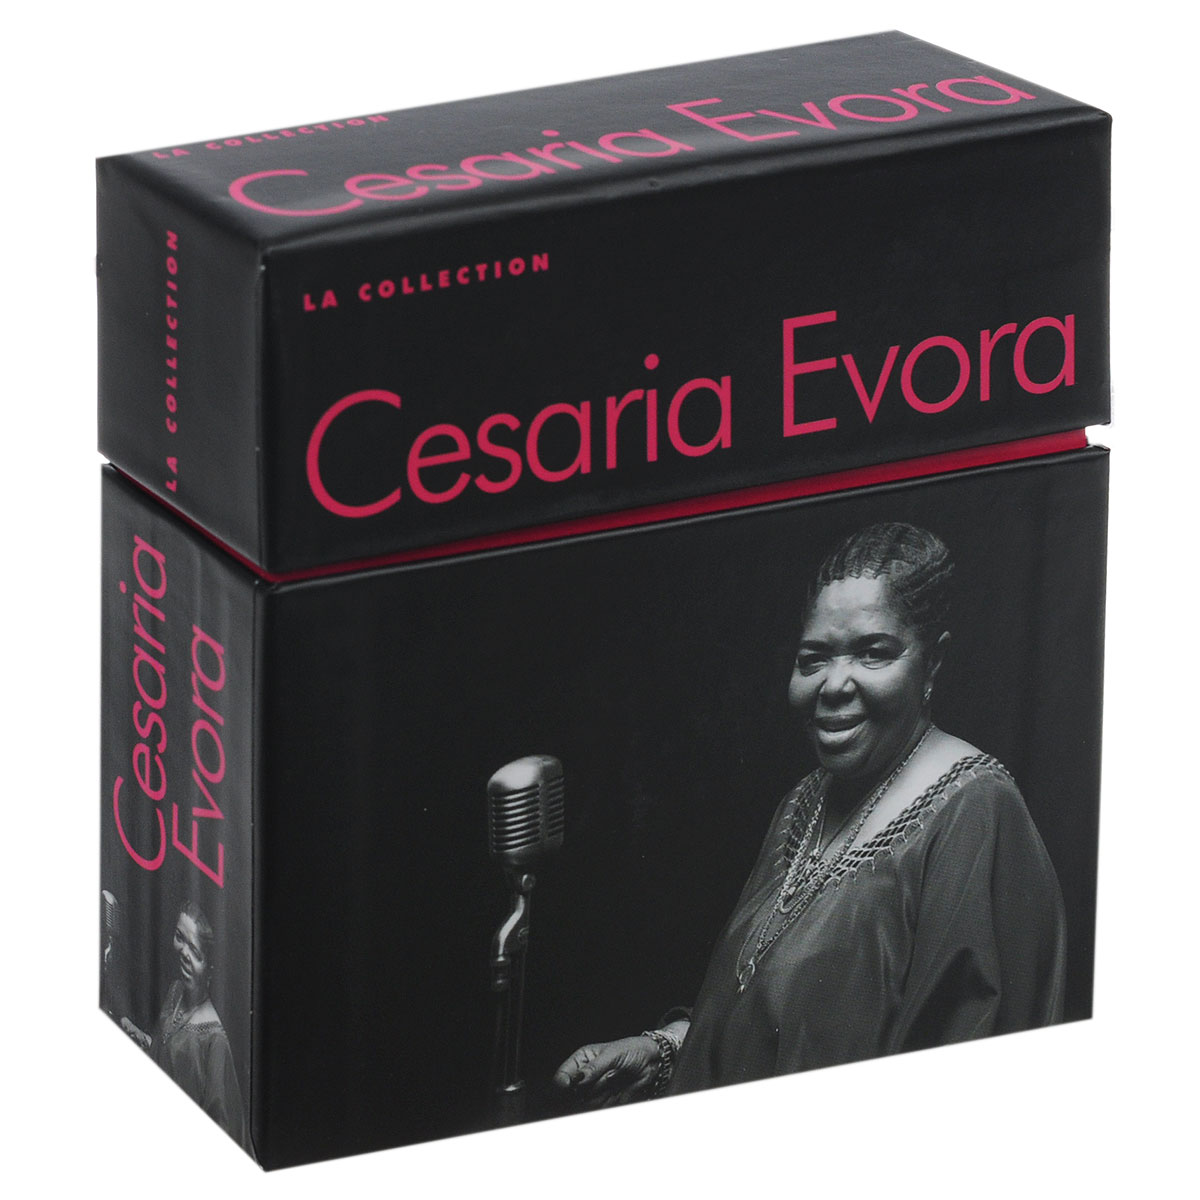 Cesaria Evora. La Сollection (6 CD + DVD)